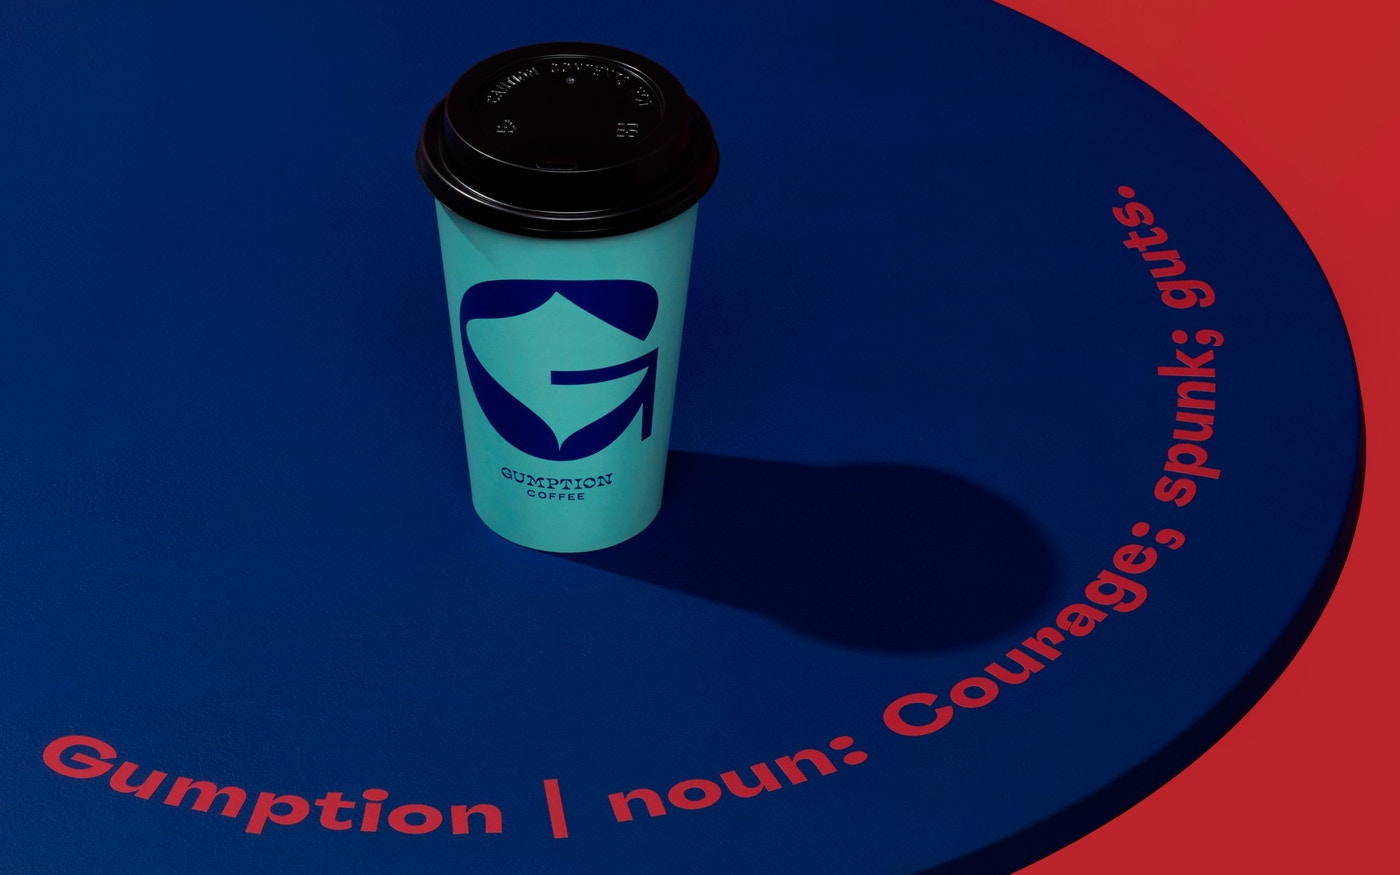 Gumption definition and designed coffee cup